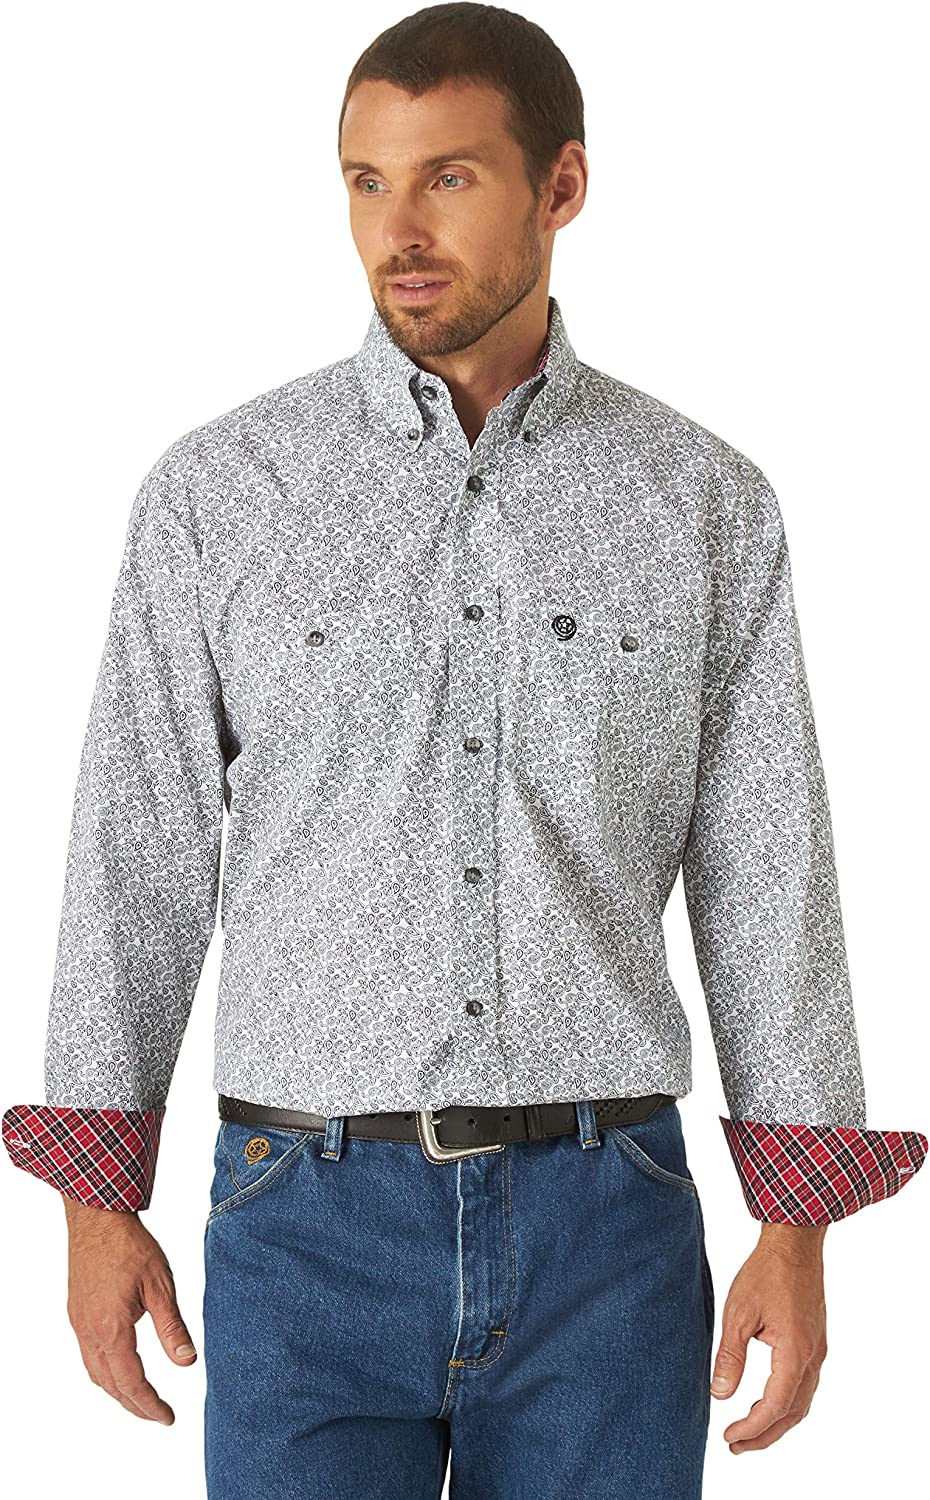 Wrangler Men's George Strait by Small Paisley Print Long Sleeve Western Shirt Red X-Large Tall